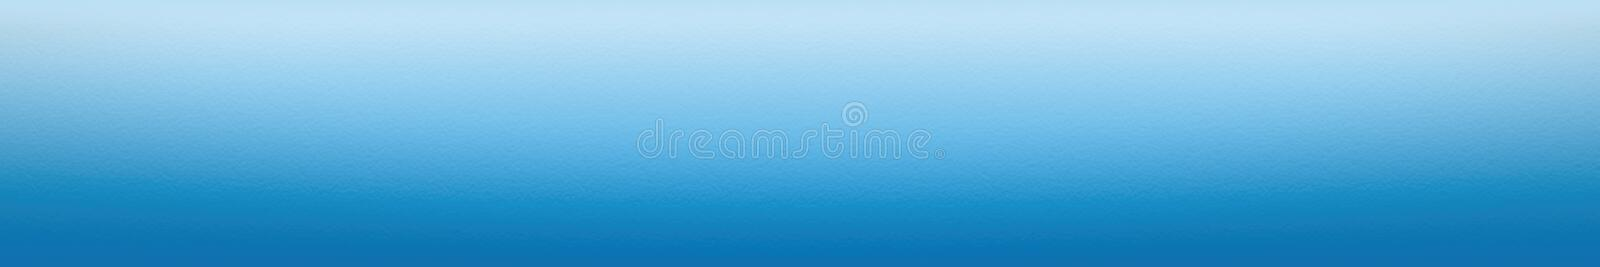 Blue web site header or footer background stock illustration